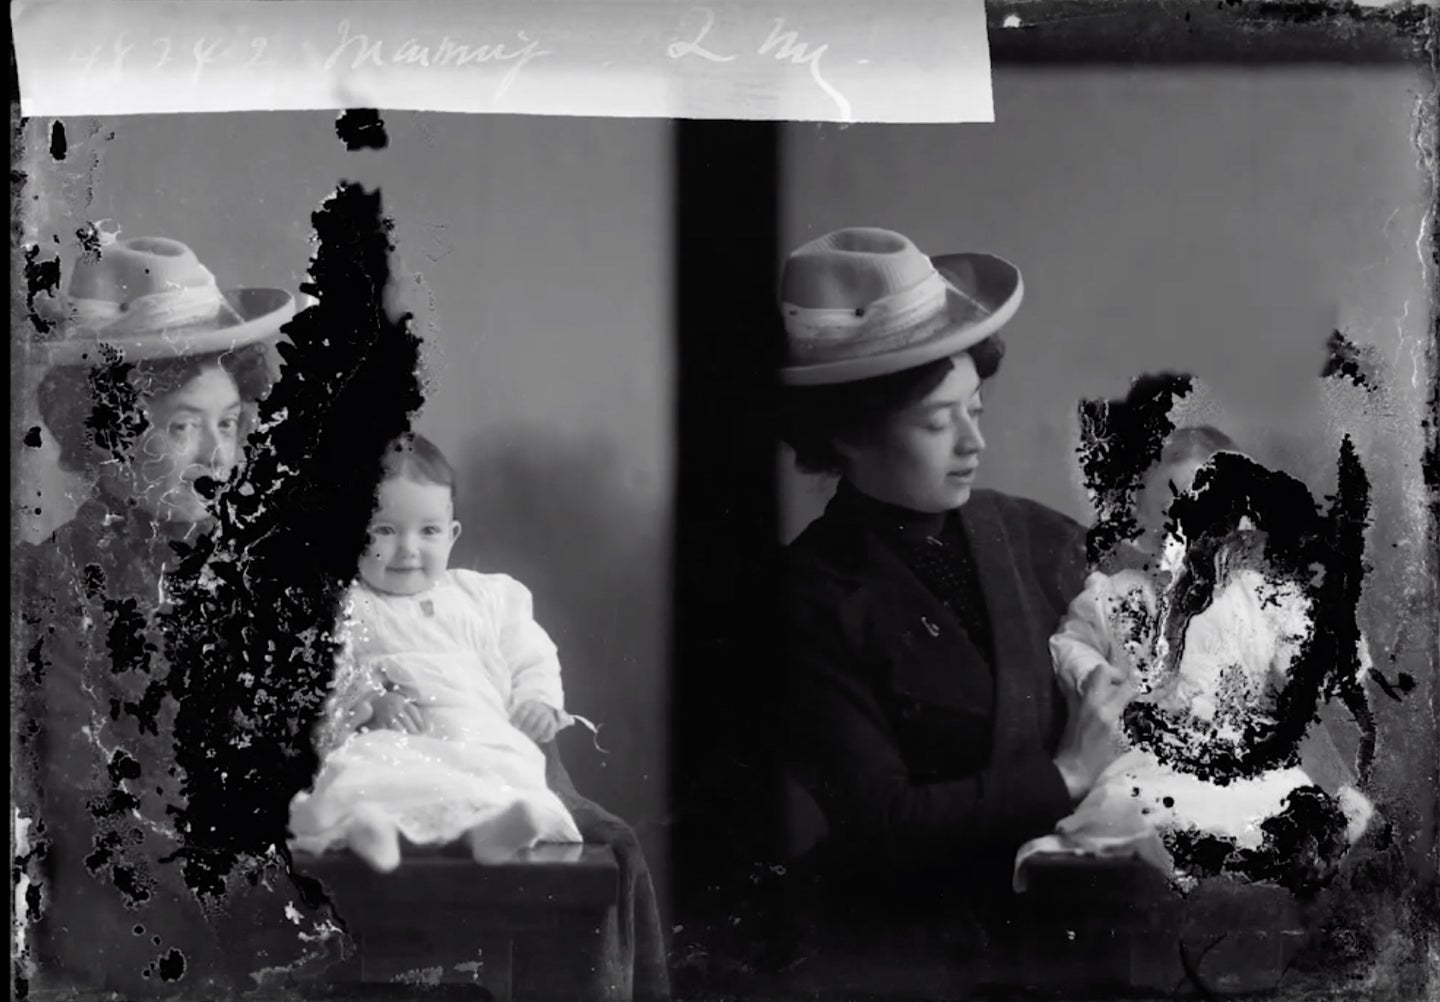 damaged photograph of mother and daughter from 1903